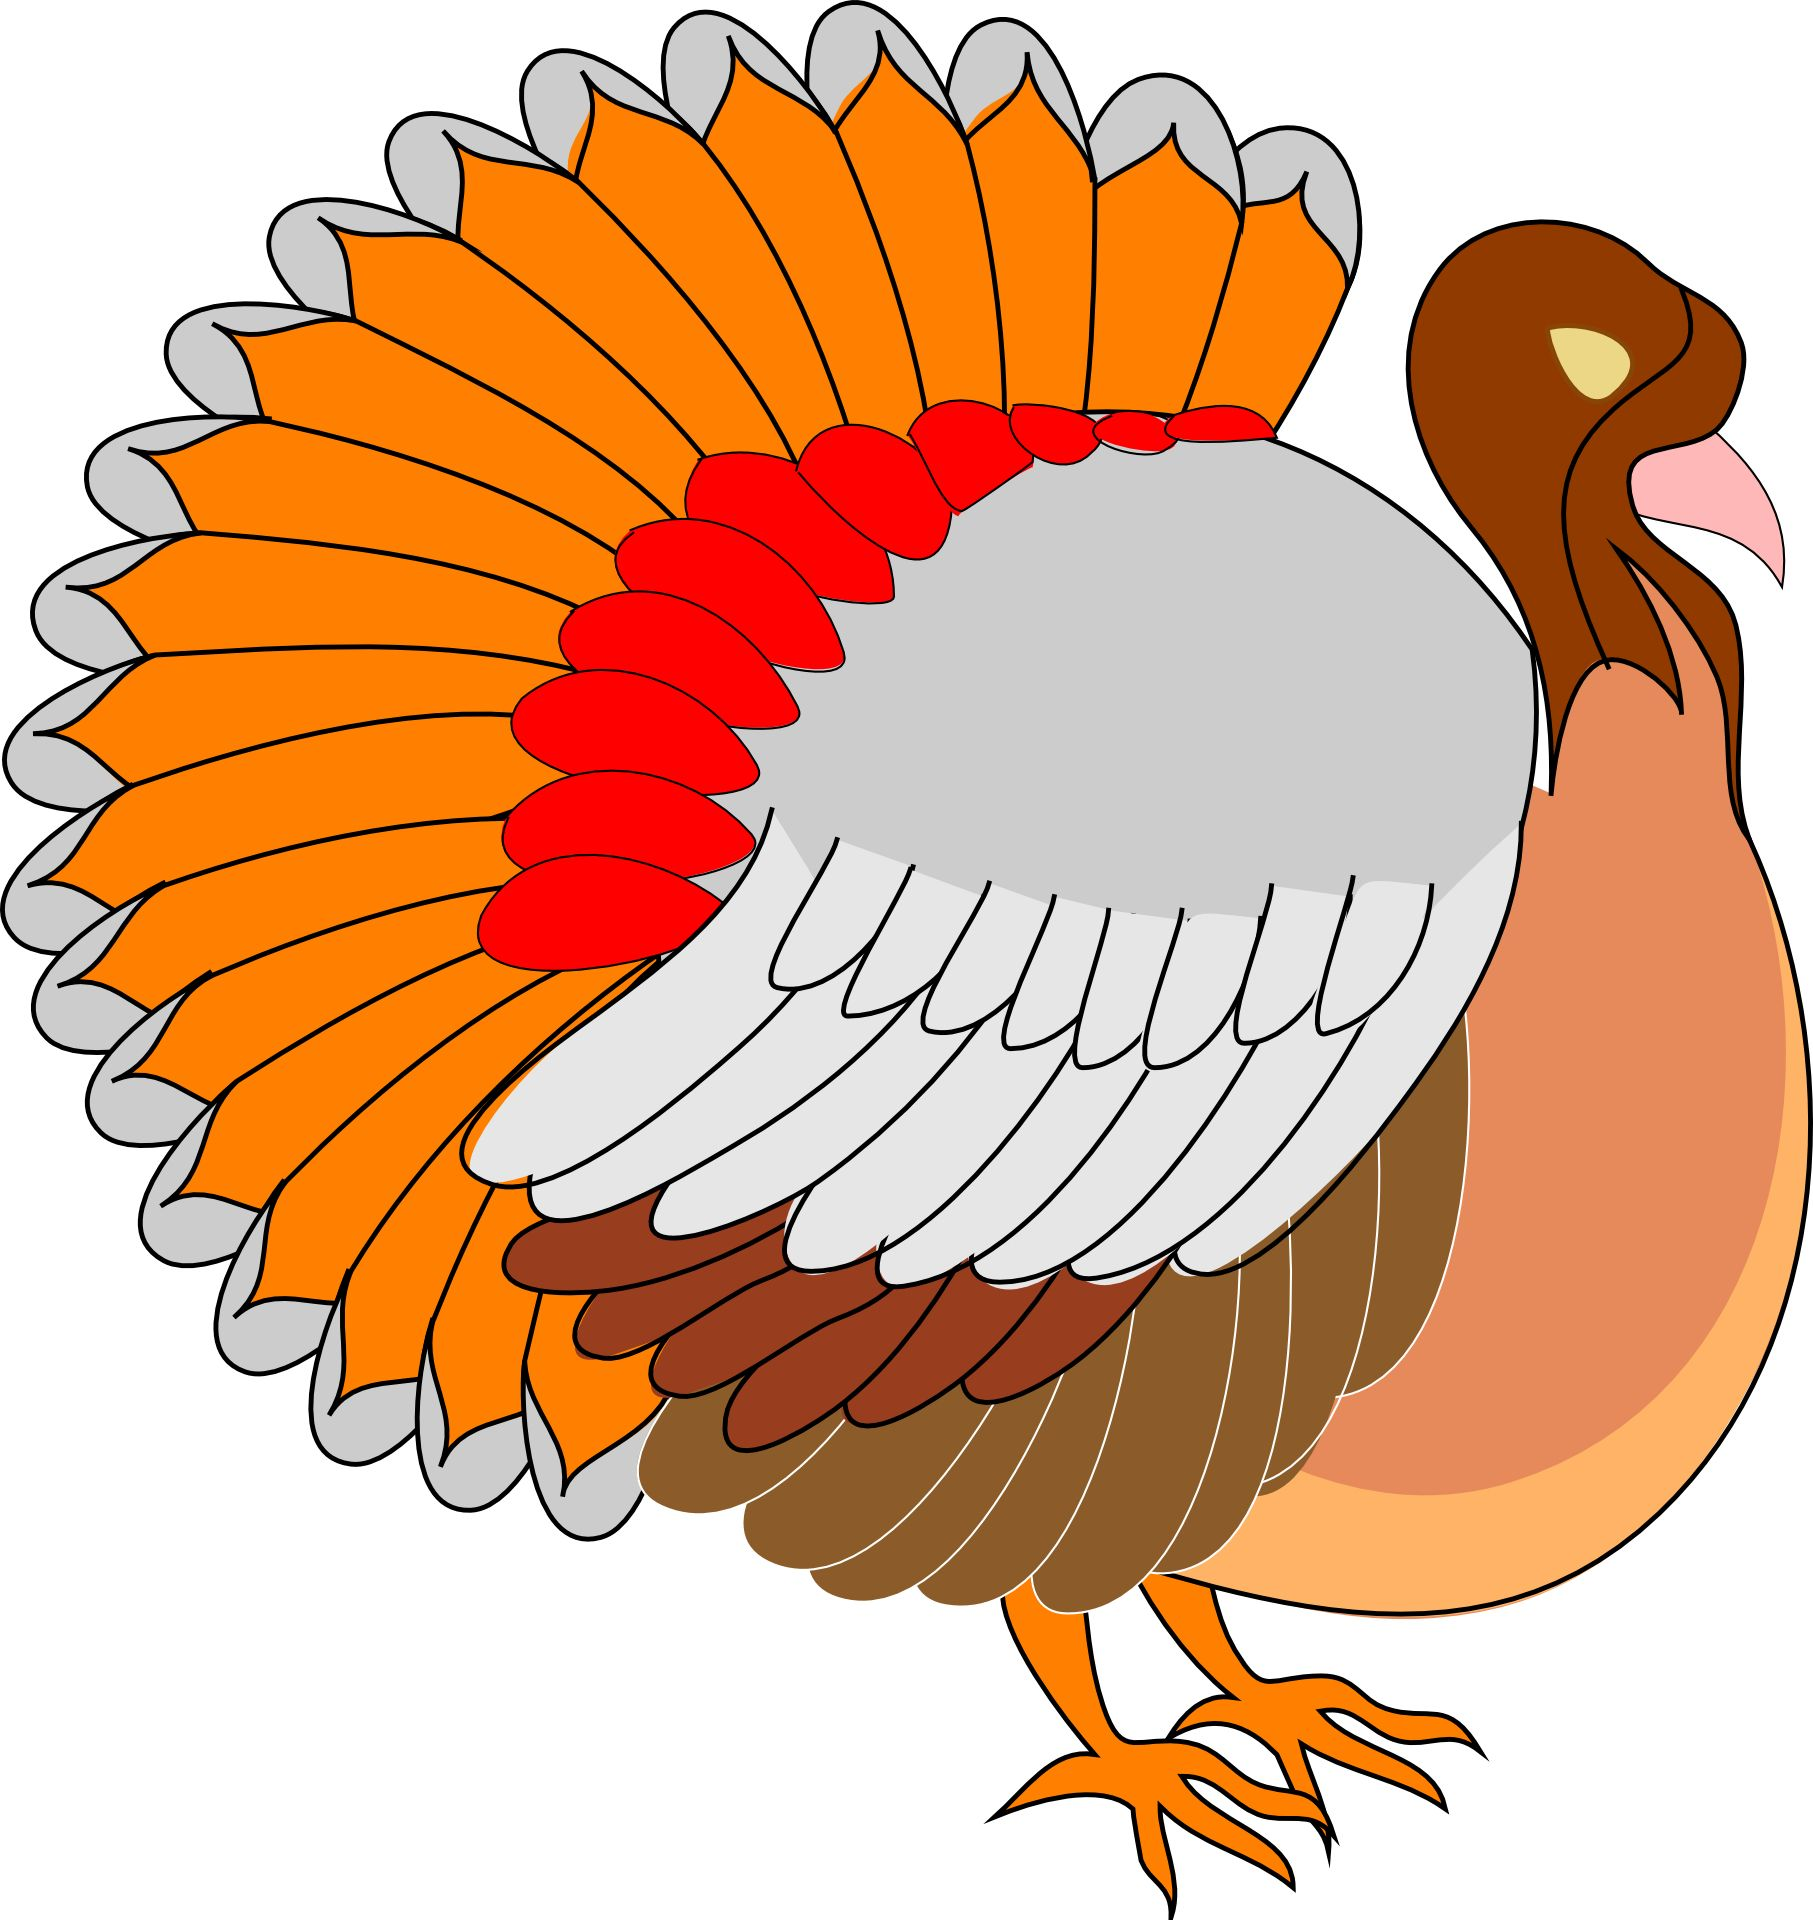 Colorful Turkey Vectorfree Psd Vector Icons Graphics Thanksgiving Clip Art Turkey Clip Art Thanksgiving Lessons